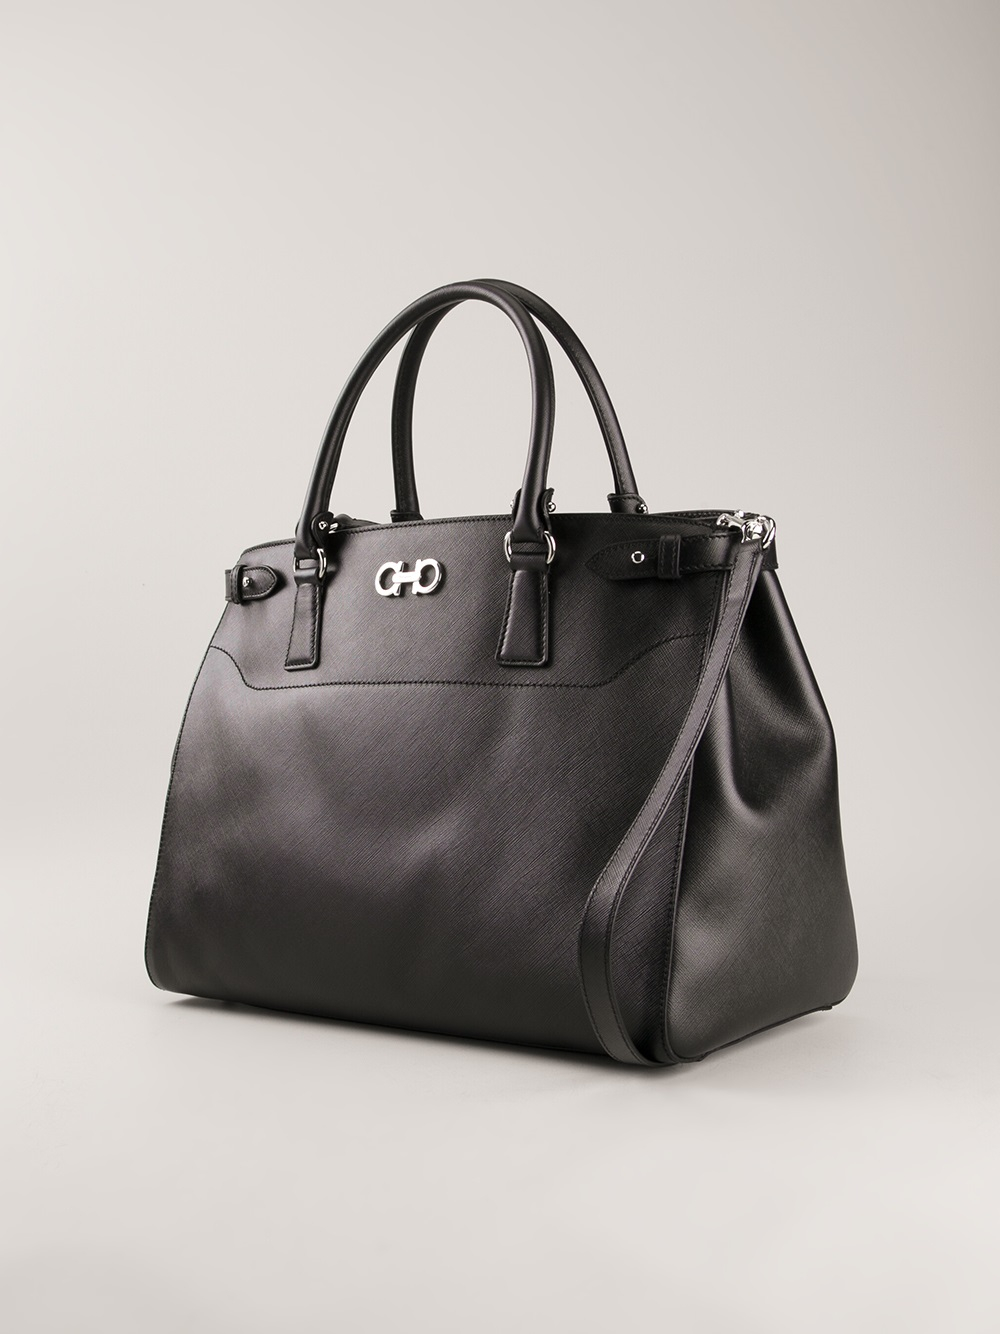 Lyst ferragamo large tote bag in black jpg 1000x1334 Salvatore ferragamo  black handbags fd2b19336a15d